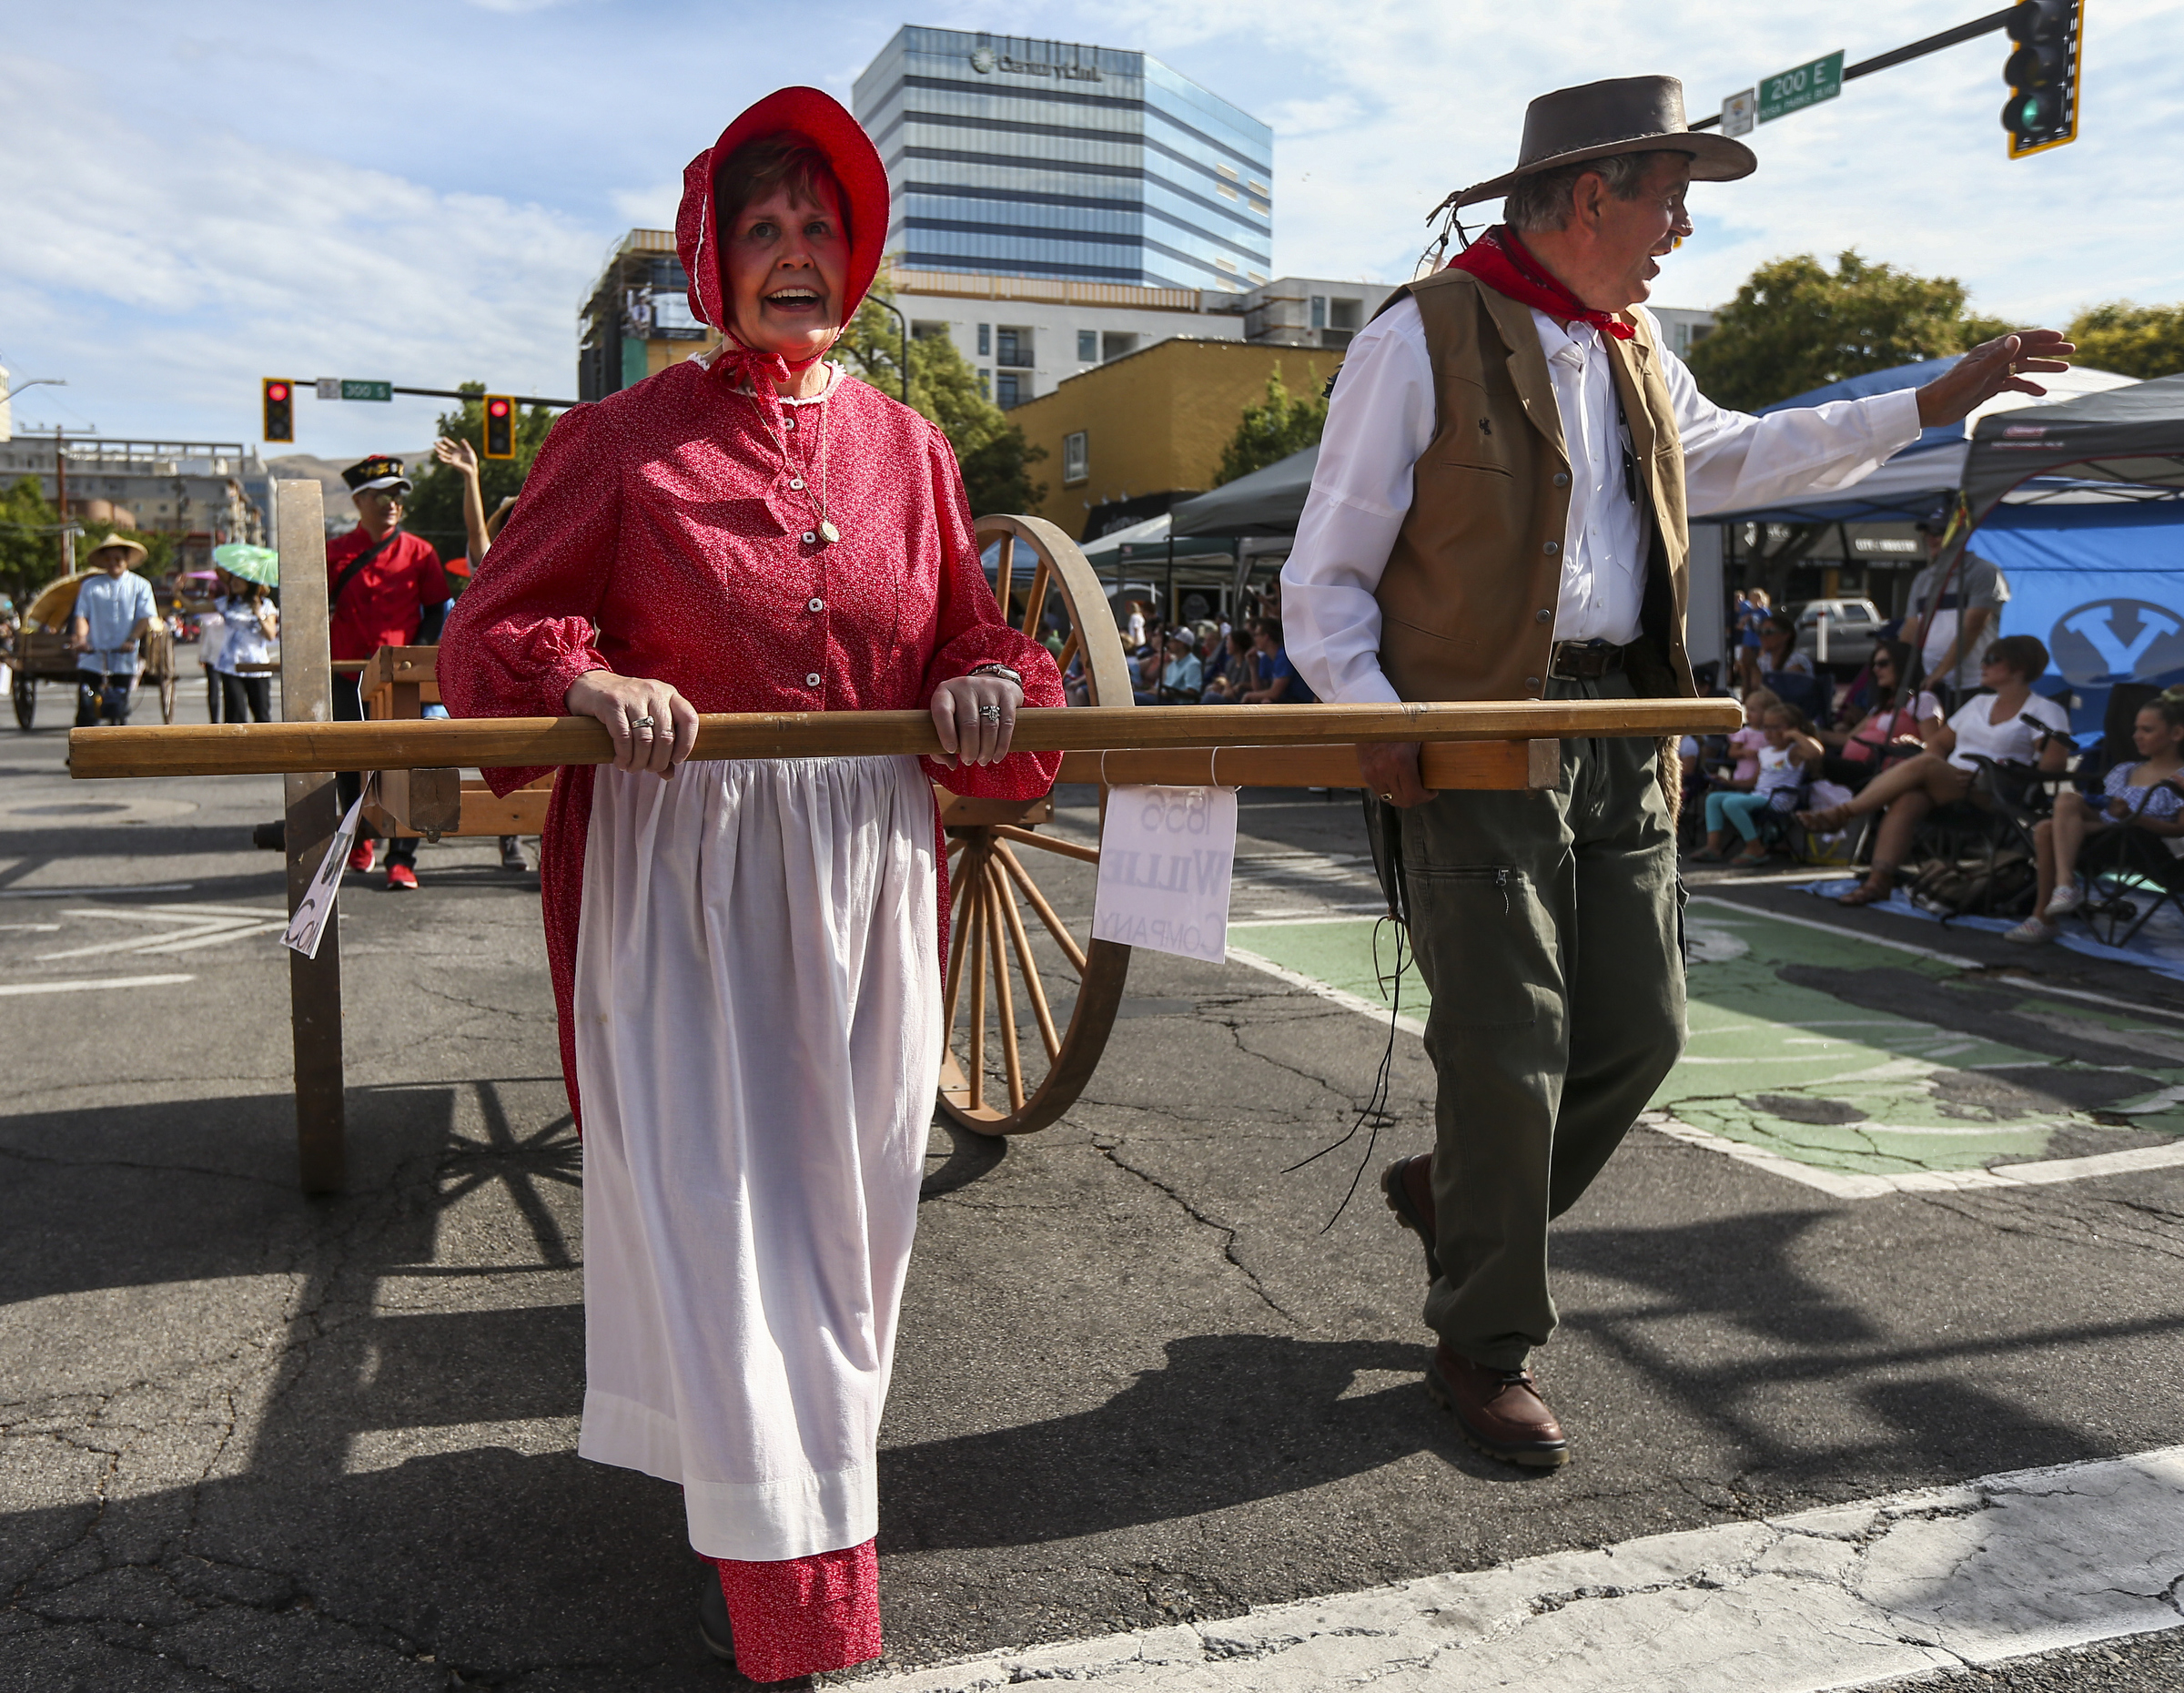 Mark Bezzant, right, and Colleen Bezzant pull a handcart with the Sons of Utah Pioneers during the Days of '47 Parade in Downtown Salt Lake City on Wednesday, July 24, 2019.